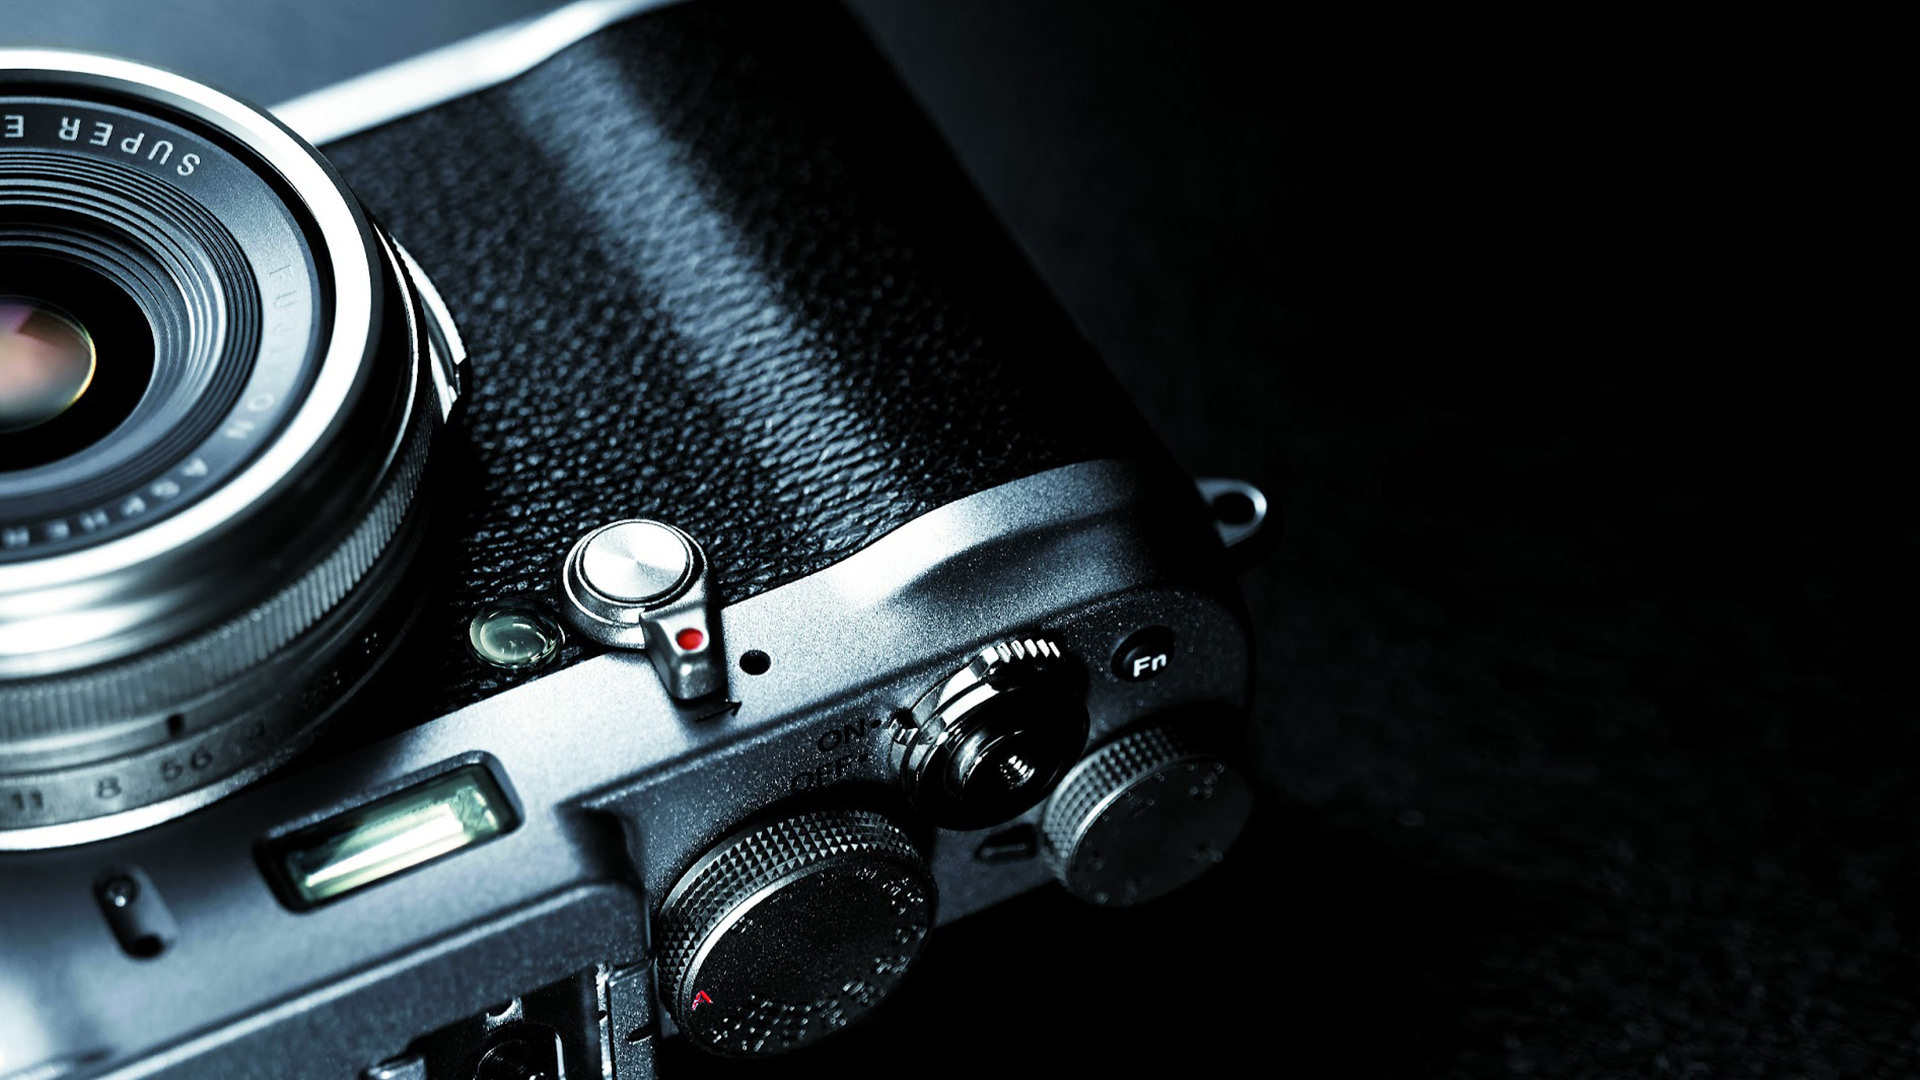 Vintage Fujifilm Camera Wallpaper